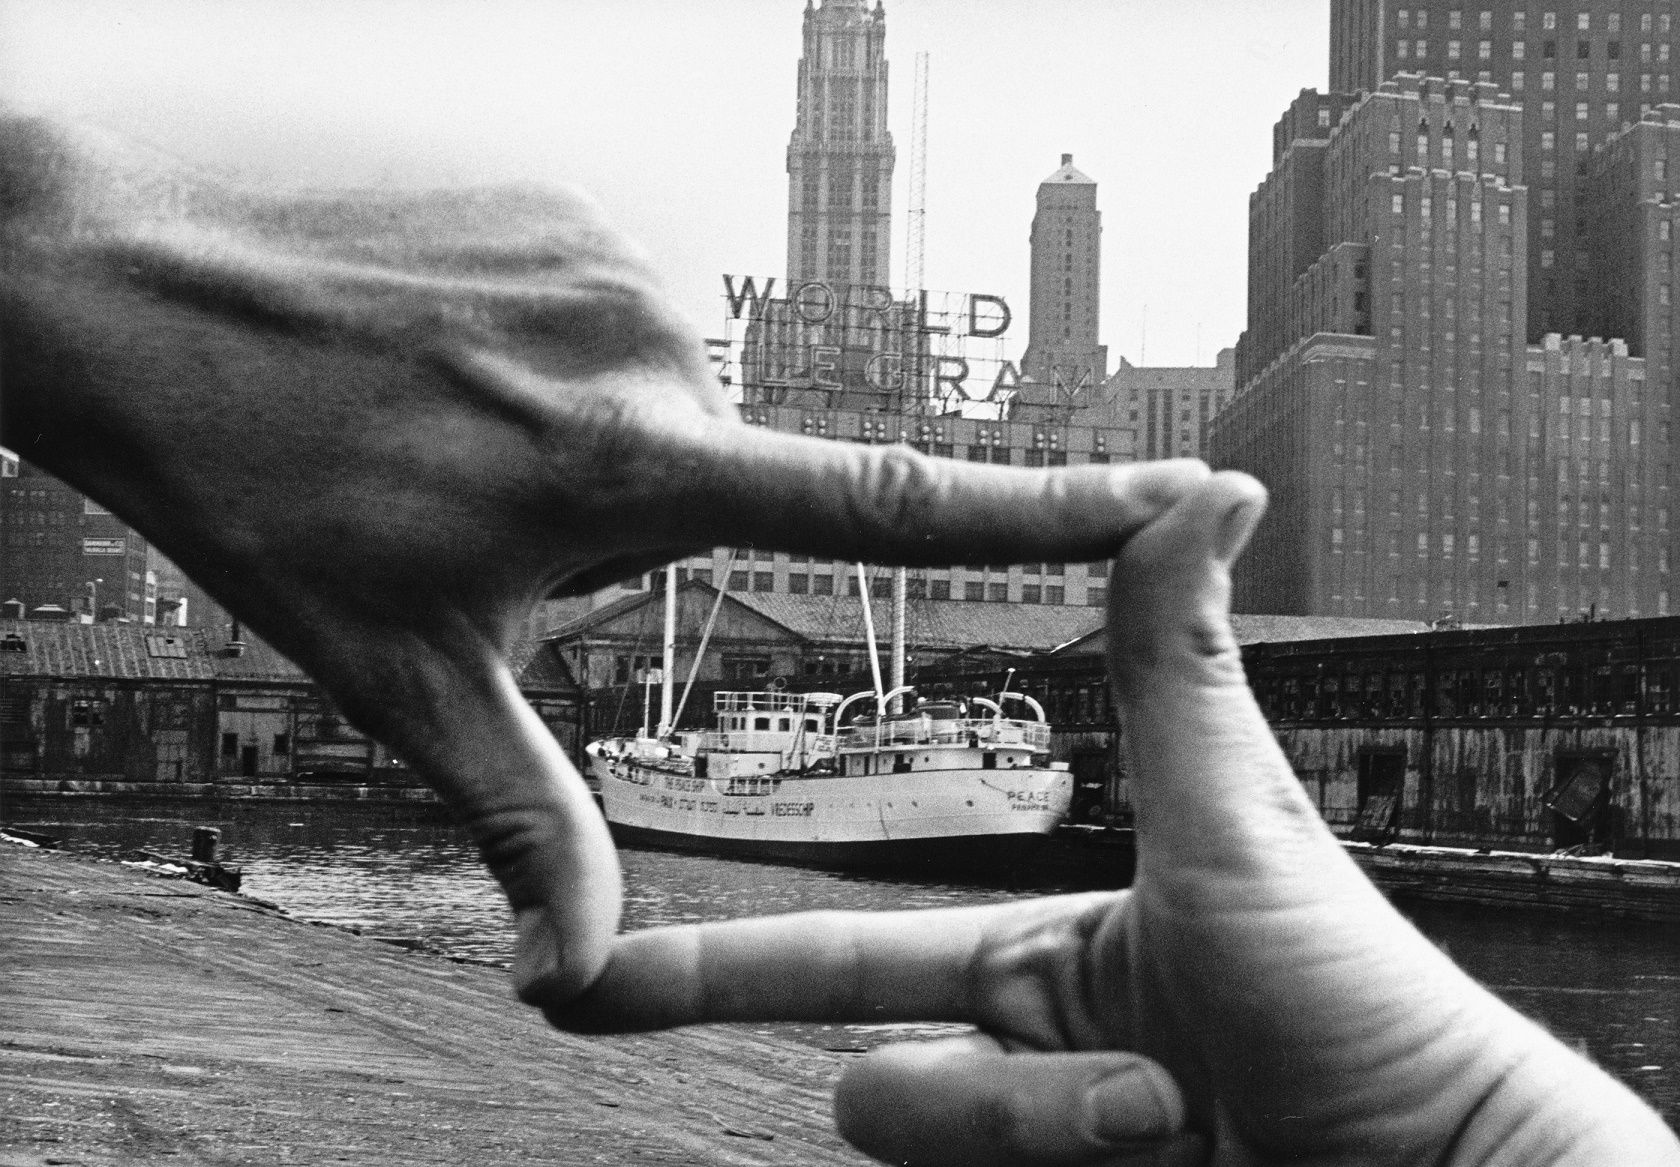 John Baldessari: Hands Framing New  York Harbor, aus dem Projekt »Pier 18«, 1971 © John Baldessari, Photo: Shunk-Kender, J.  Paul Getty Trust. The Getty Research Institute, Los Angeles / Schirmer/Mosel